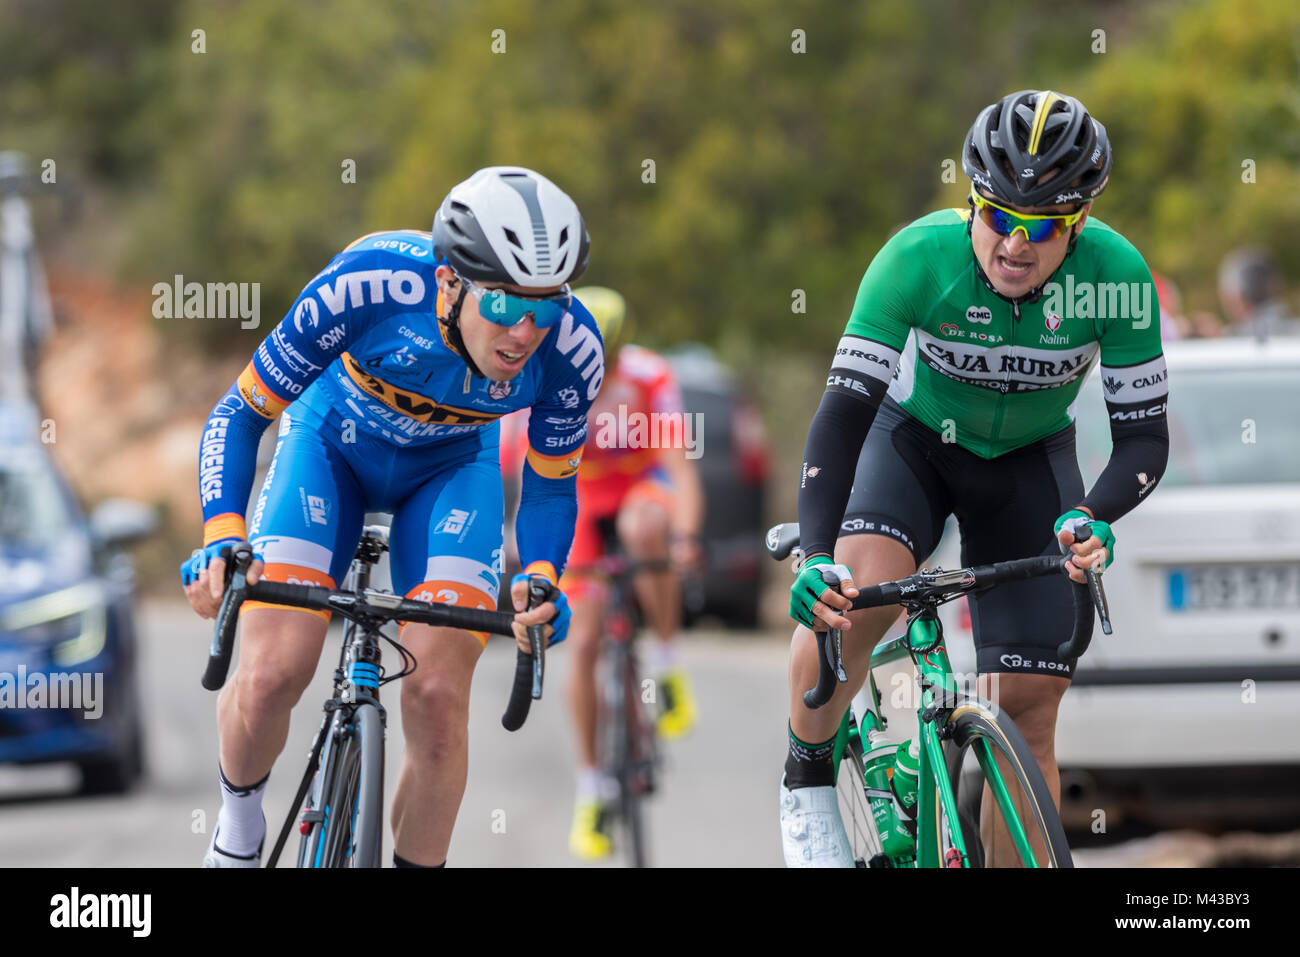 Algarve, Portugal, 14th Feb, 2017, Luis Afonso leads Josu Zabala for 2nd place on the Cat 4 climb of Aldeia dos - Stock Image